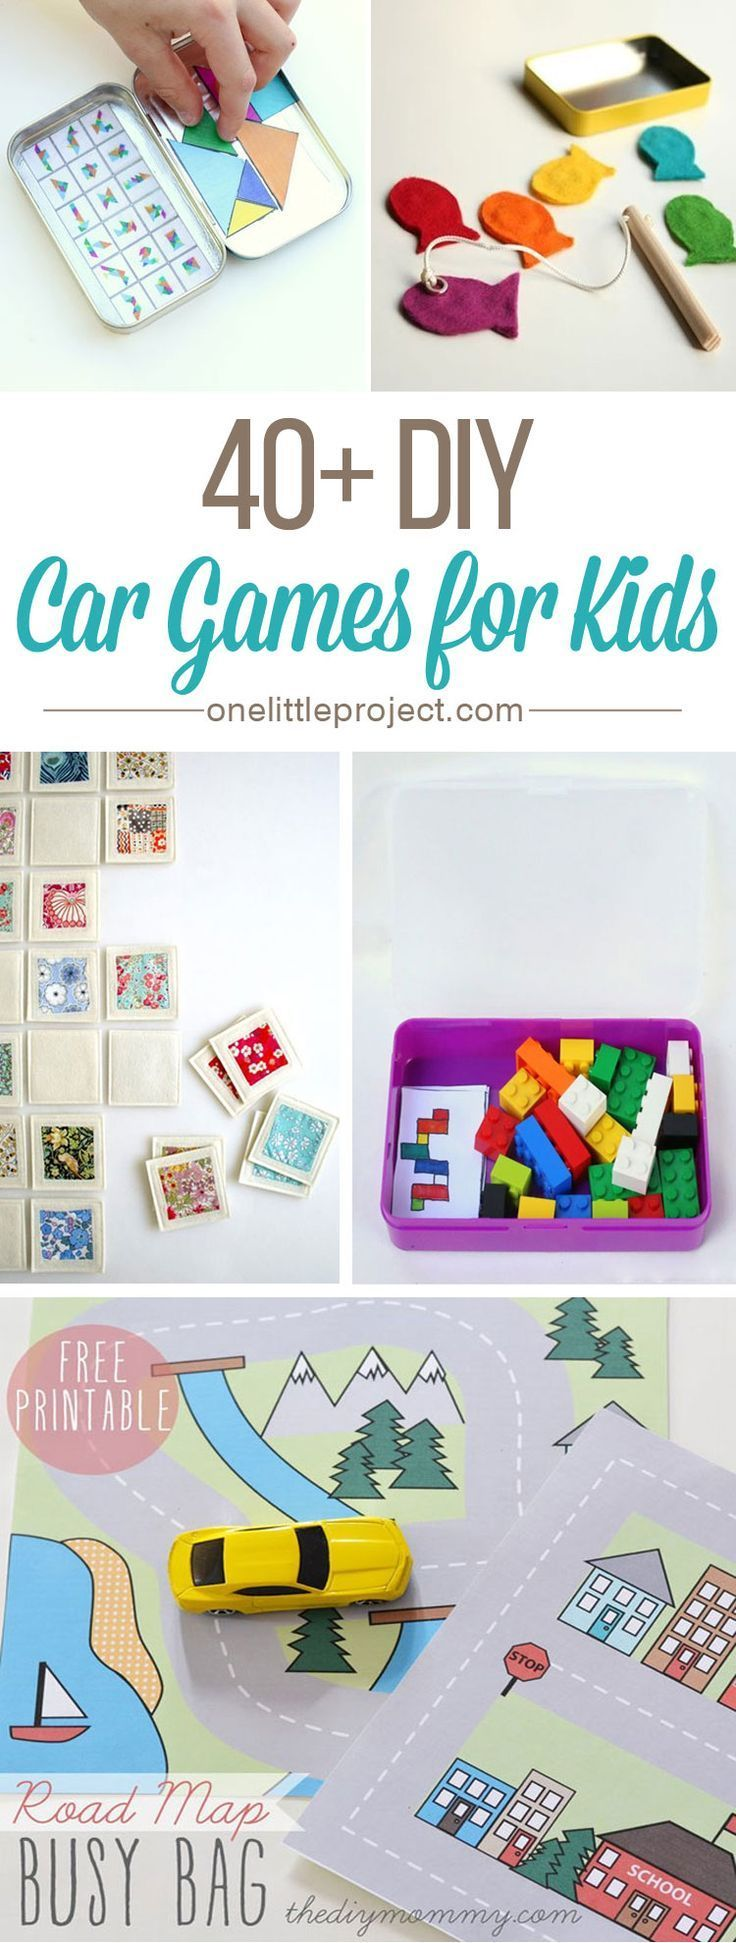 100 ways to keep kids busy this summer car games